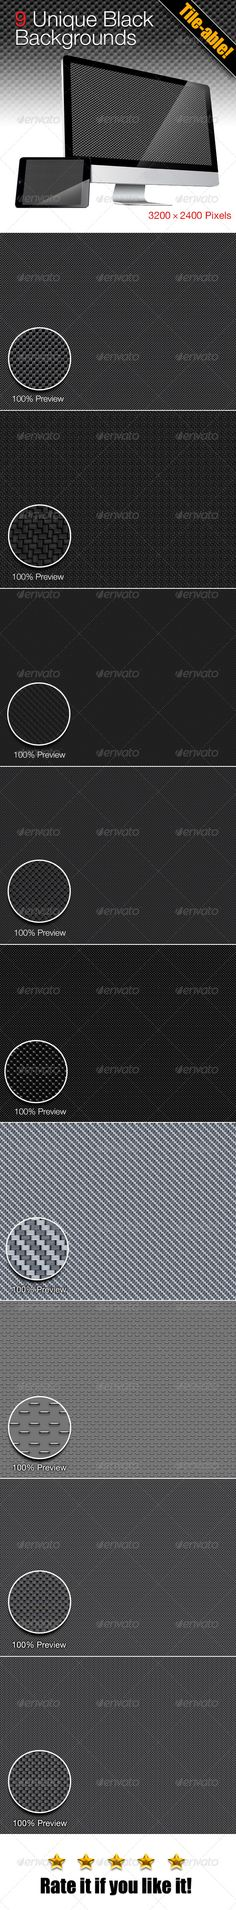 9 Gray Backgrounds with fiber carbon pattern. They are fully tile-able. 9 JPG, RGB 32002400 Pixels No layer